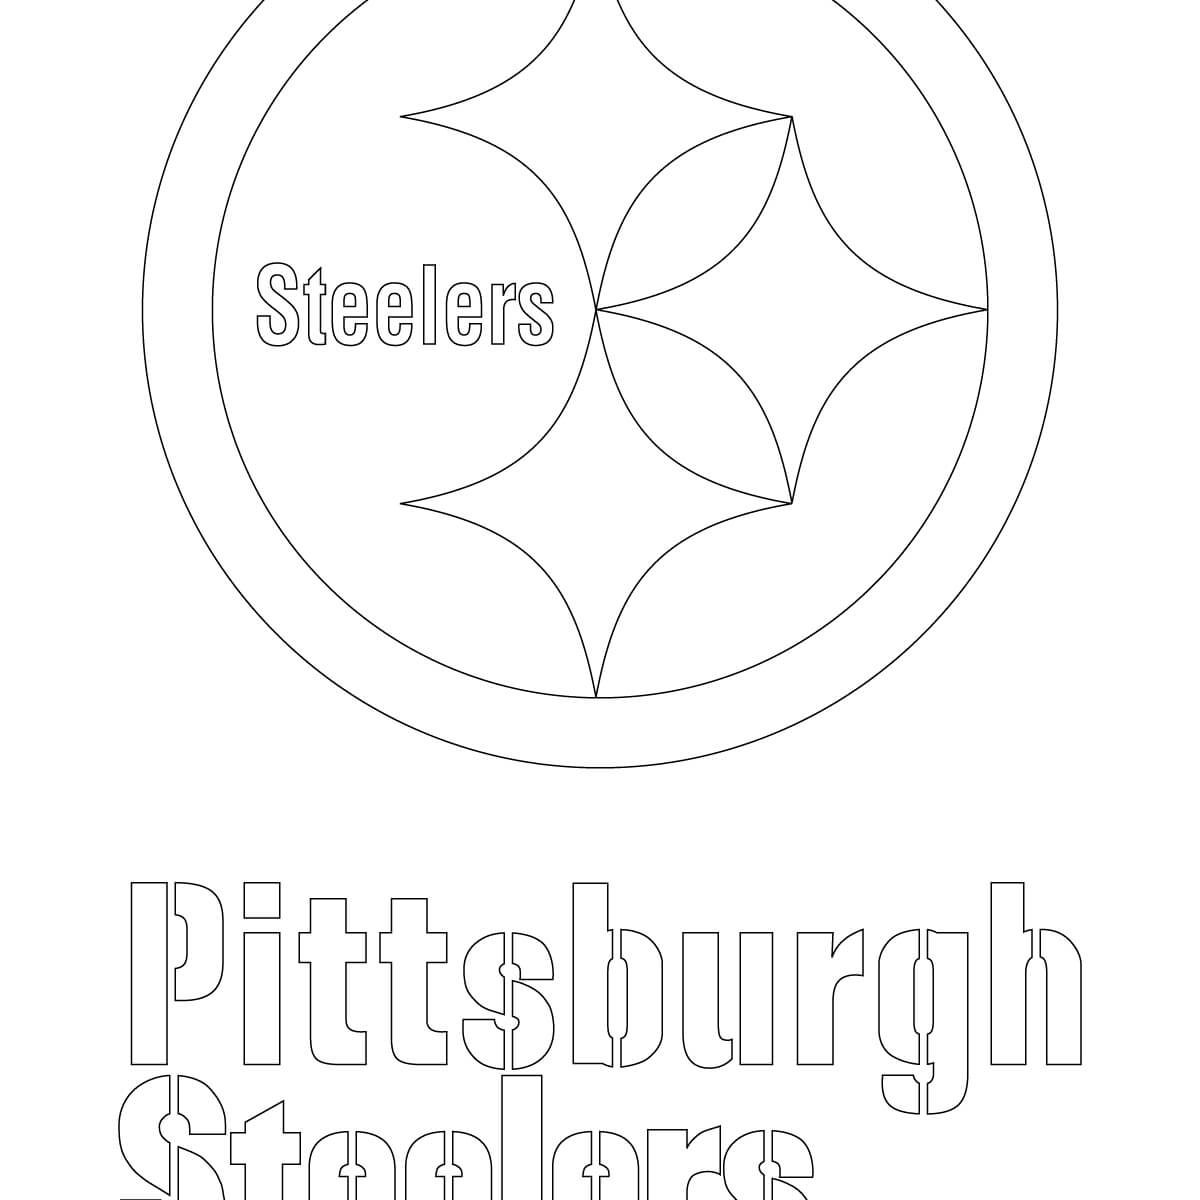 1200x1200 Pittsburgh Steelers Uniform Coloring Nfl Steeler Pages Printable